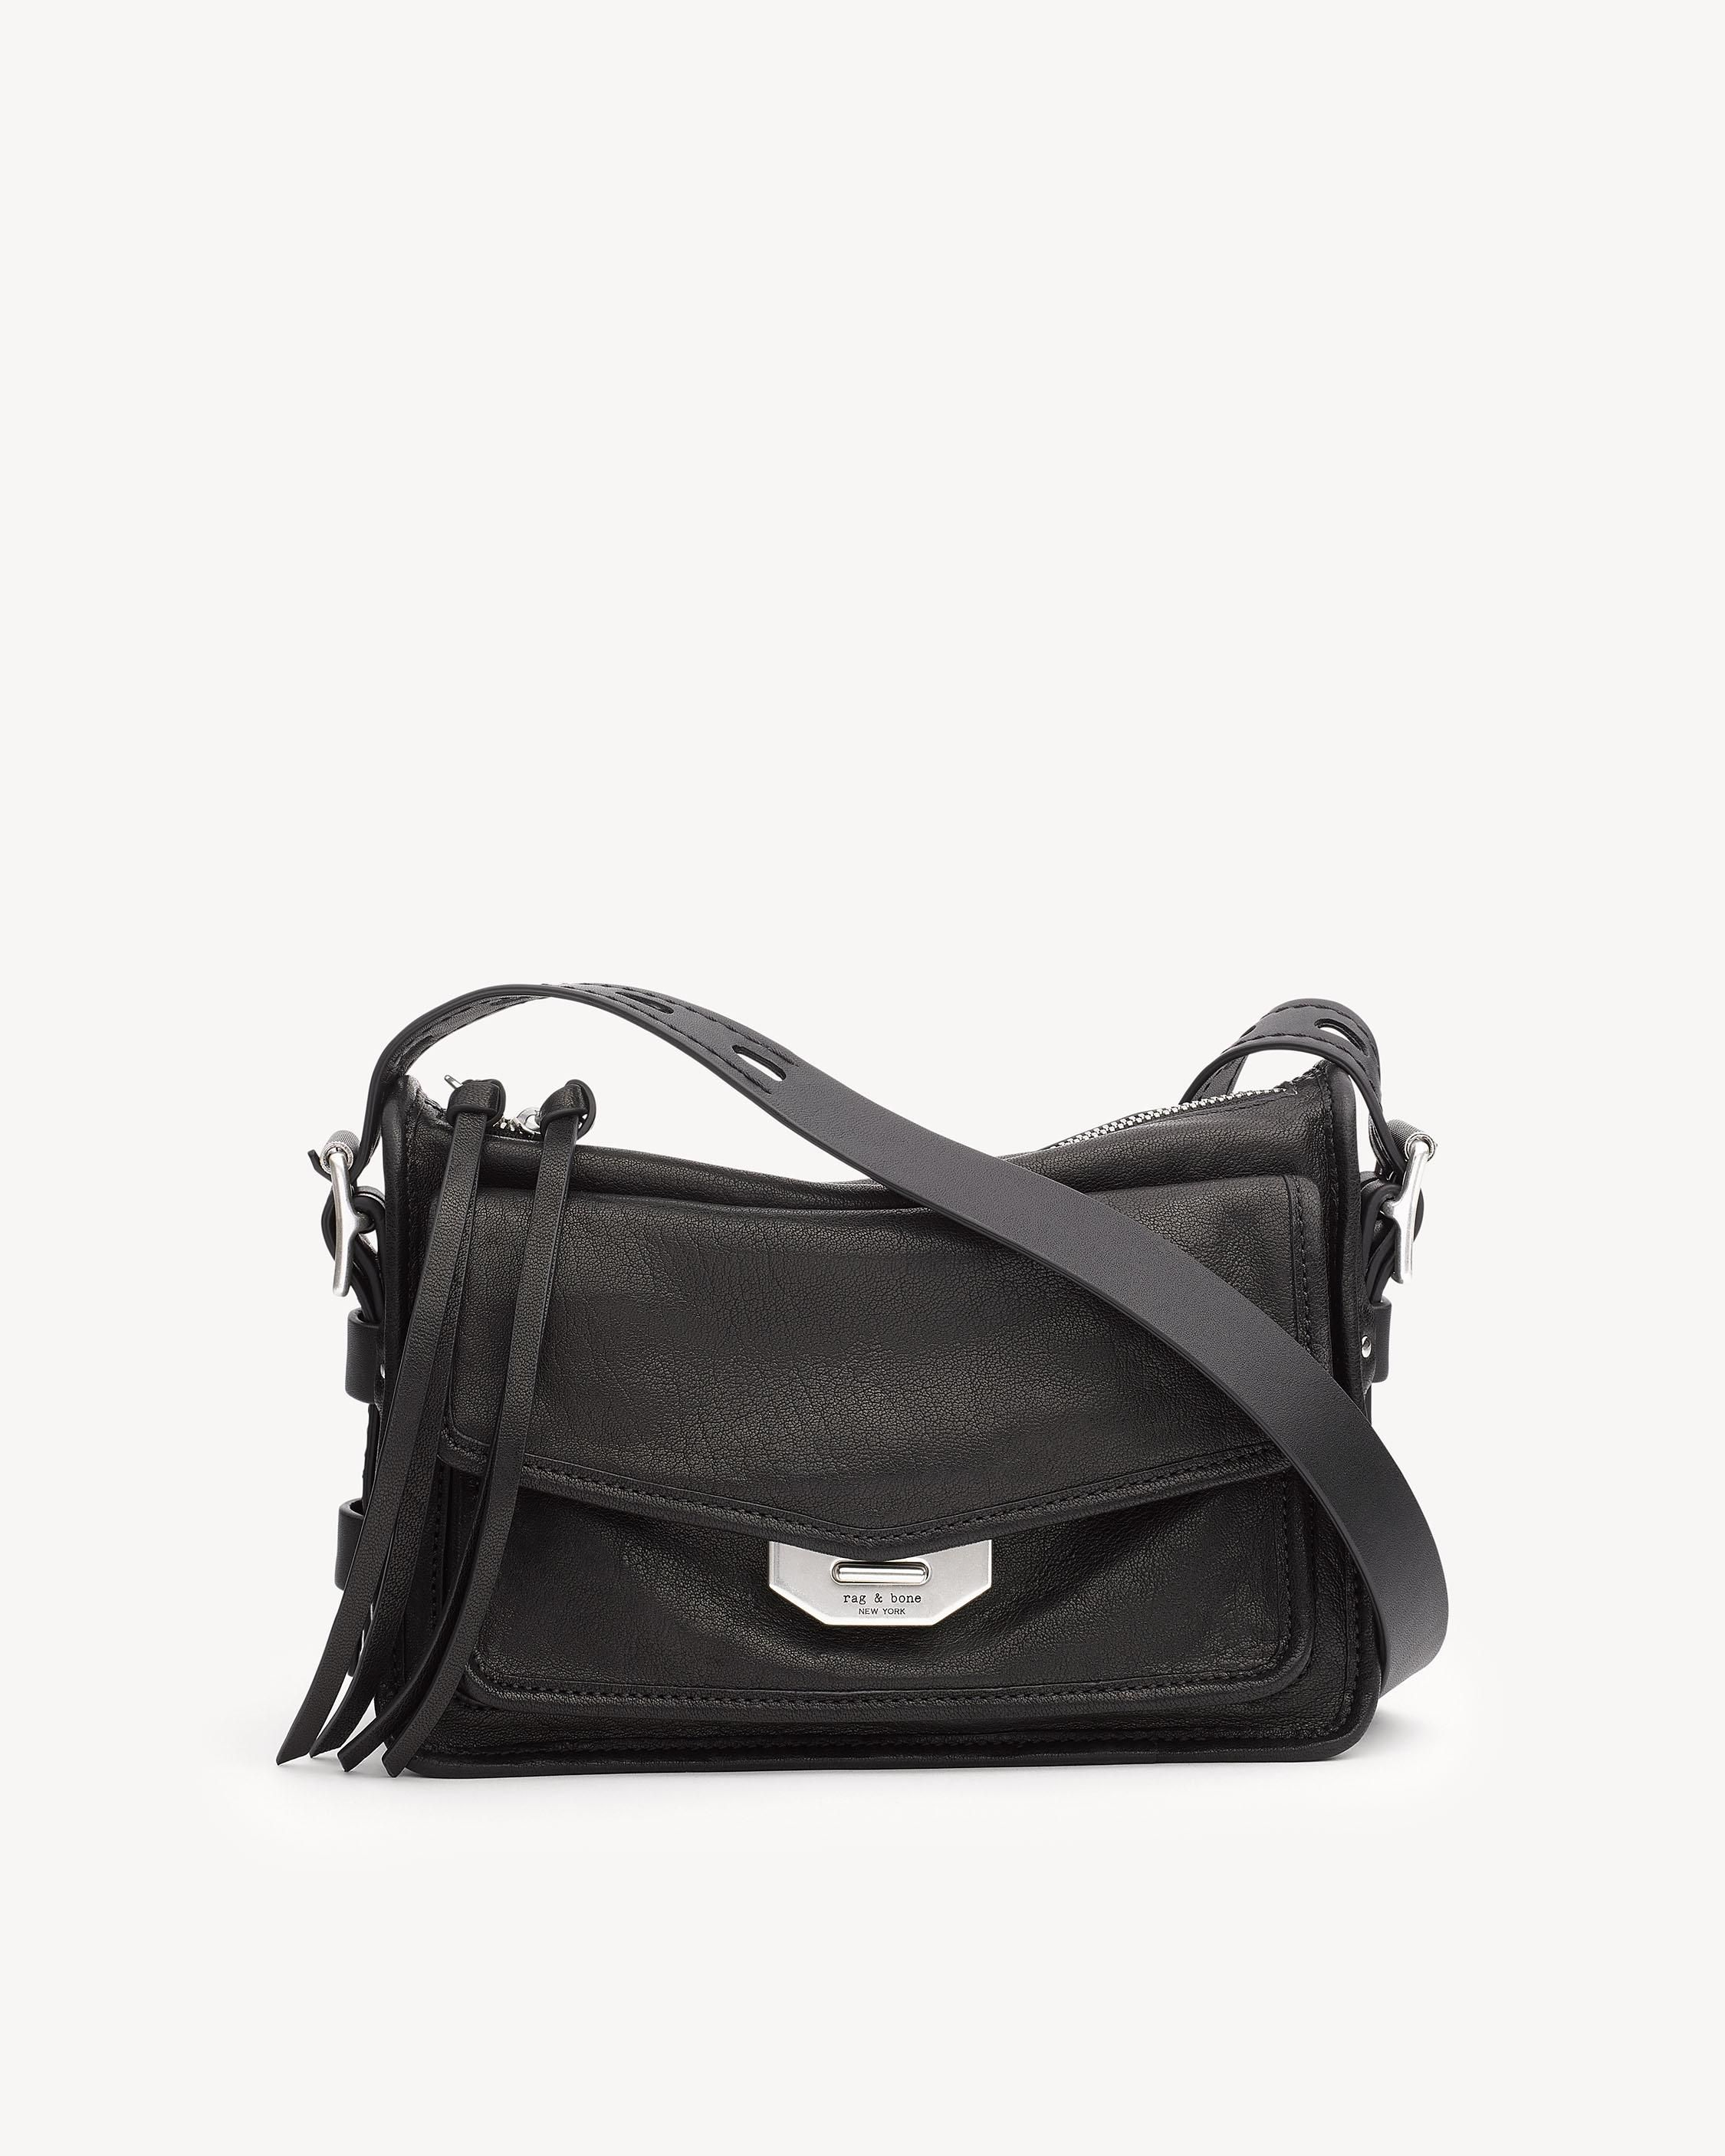 fbd98ce681a SMALL FIELD MESSENGER | Rag & Bone | Rag, bone, Bags, Black white ...